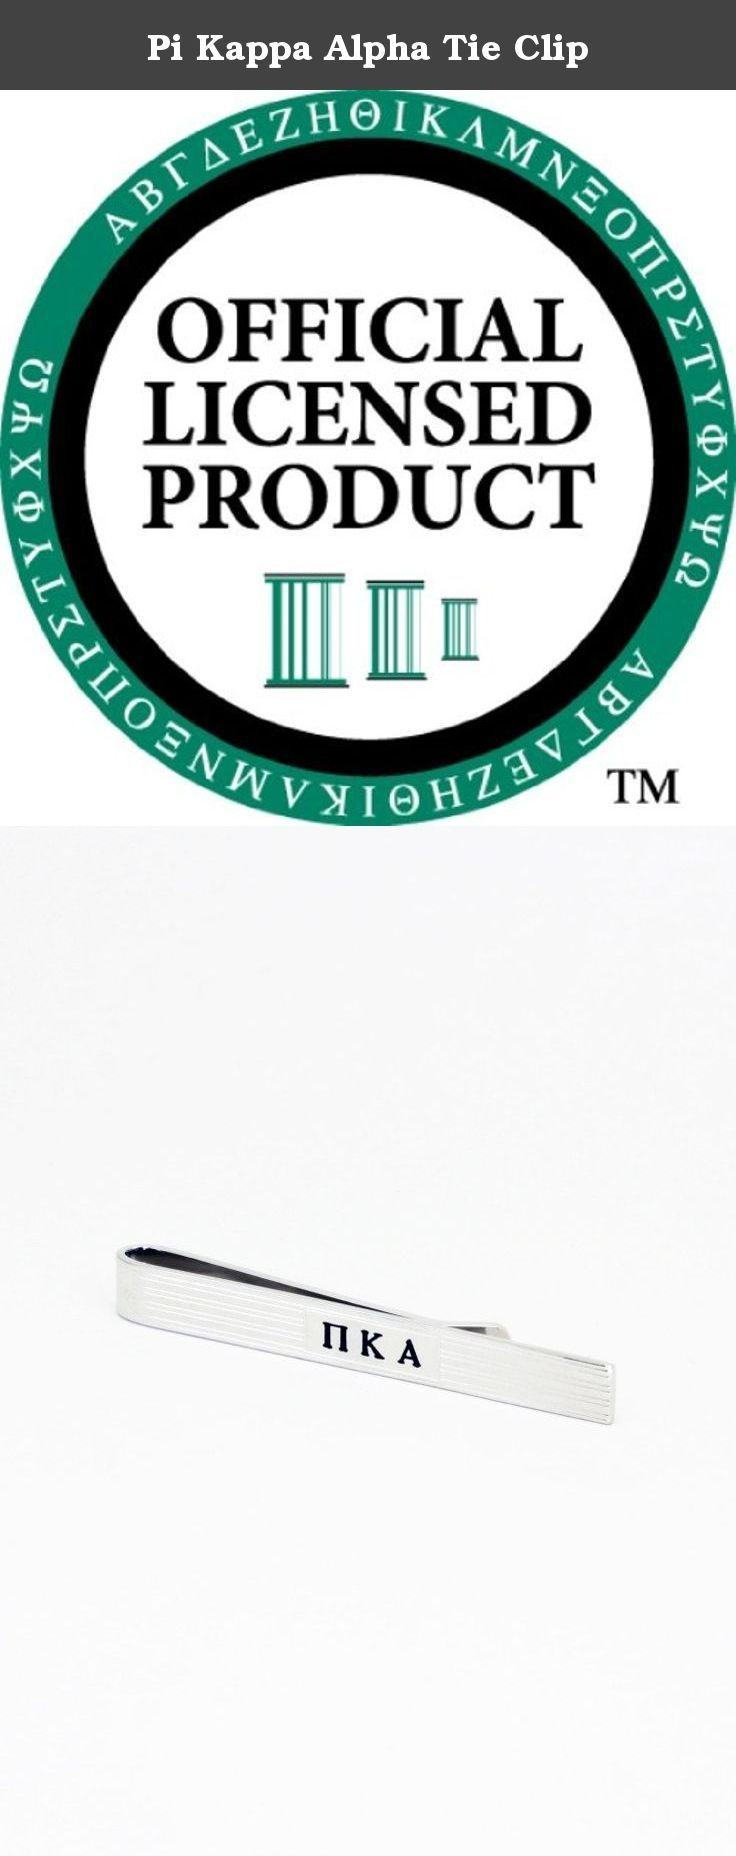 Pi Kappa Alpha Tie Clip. Simple and timeless design with Pi Kappa Alpha letter engraved in the center. Rhodium plated for a lasting finish. An elegant piece to complete your professional attire. A true gentleman's accessory, Pi Kappa Alpha tie bar clip is designed exclusively for The Collegiate Standard. Comes in a nice gift box! Make it the perfect gift for your big or little bro!.